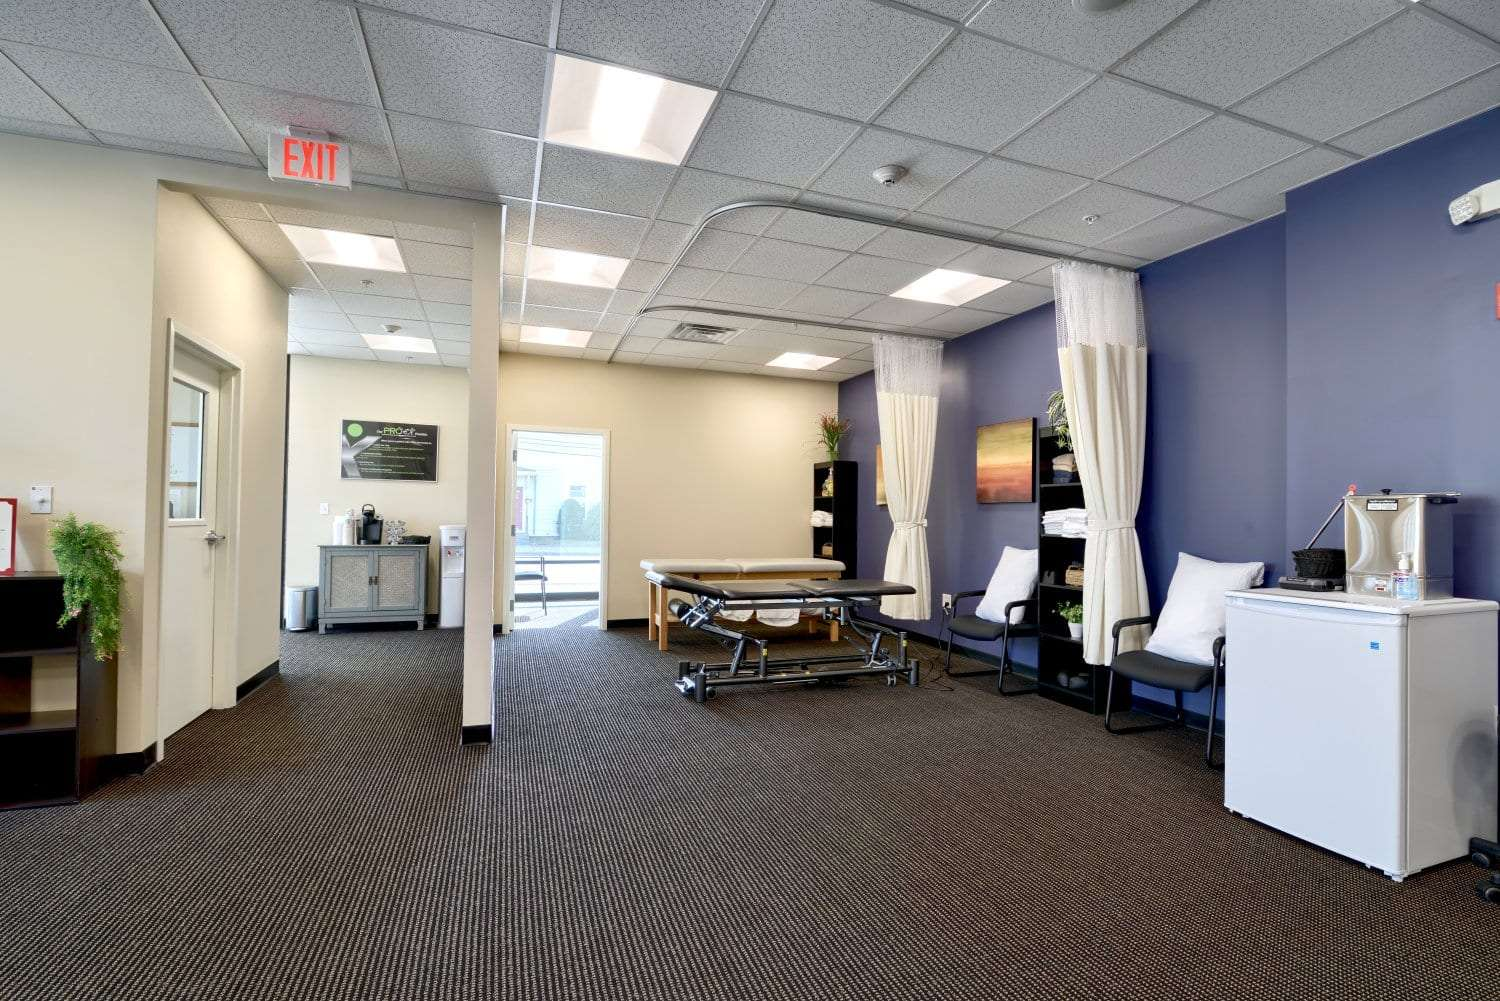 An image of the interior of our physical therapy clinic, showing a stretch bed and a fridge, at our facility in Waltham, Massachusetts.